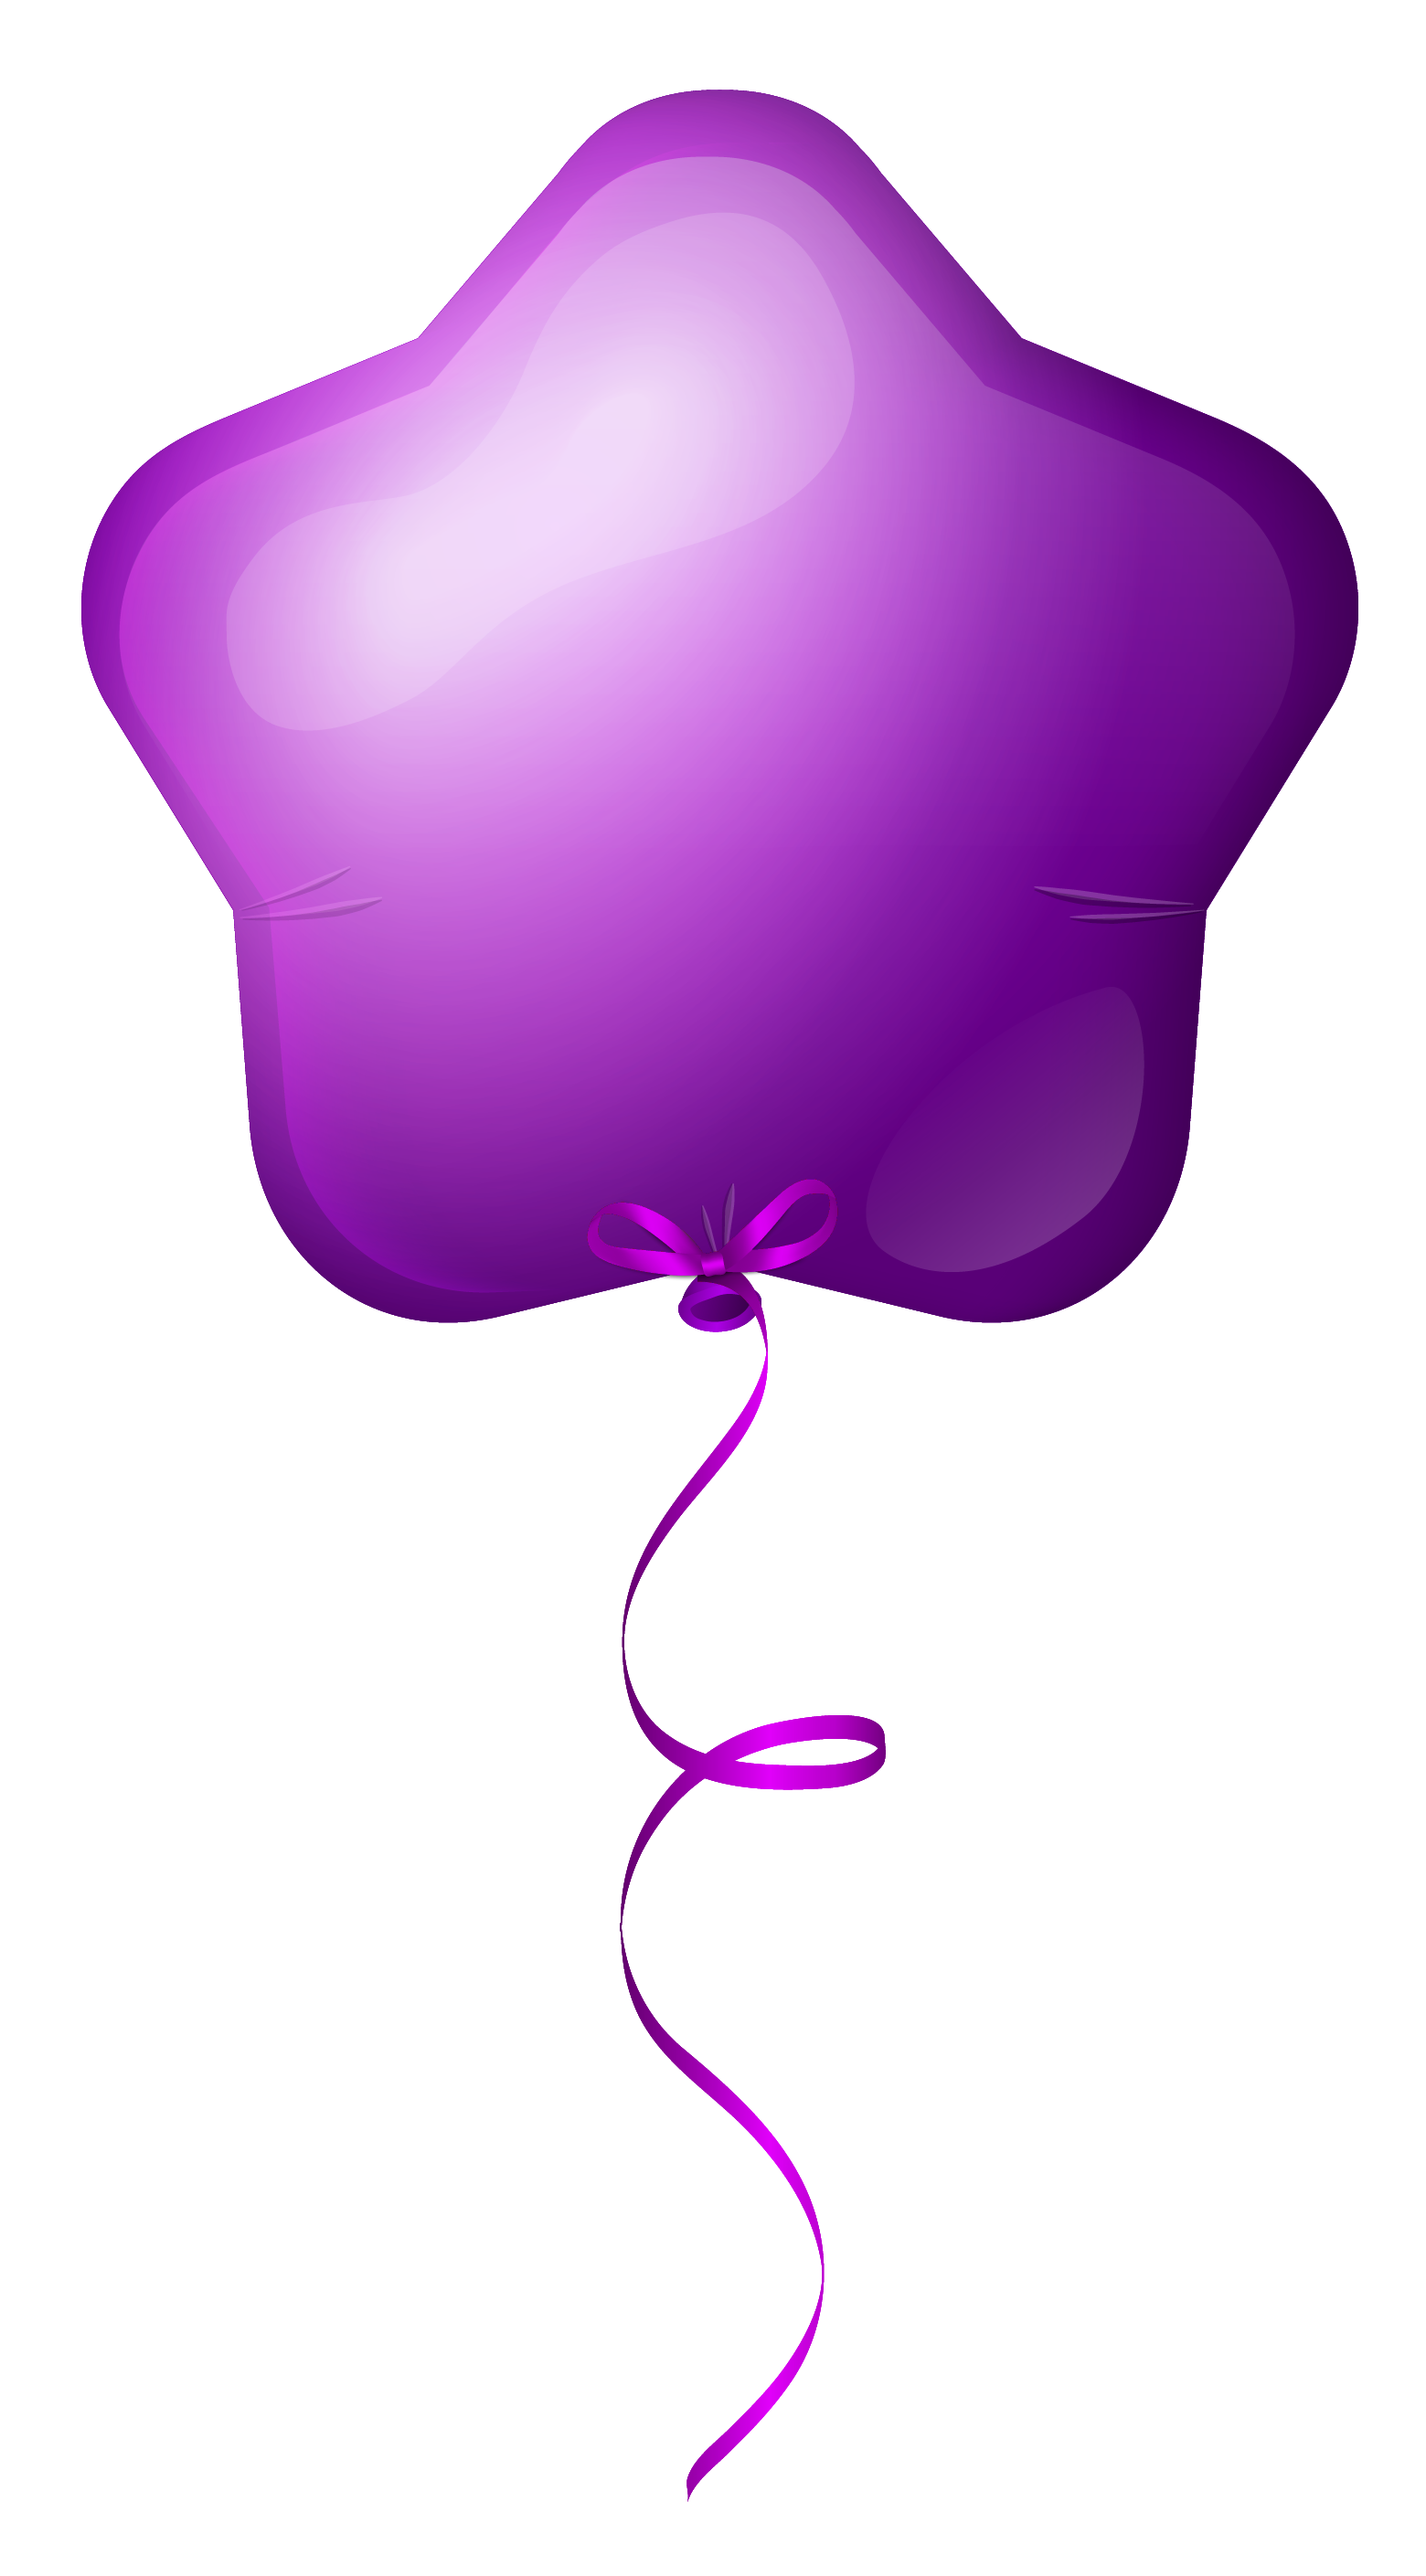 Purple Star Balloon Easter Png - Purple Star Balloon PNG Clipart Image   Gallery Yopriceville ...